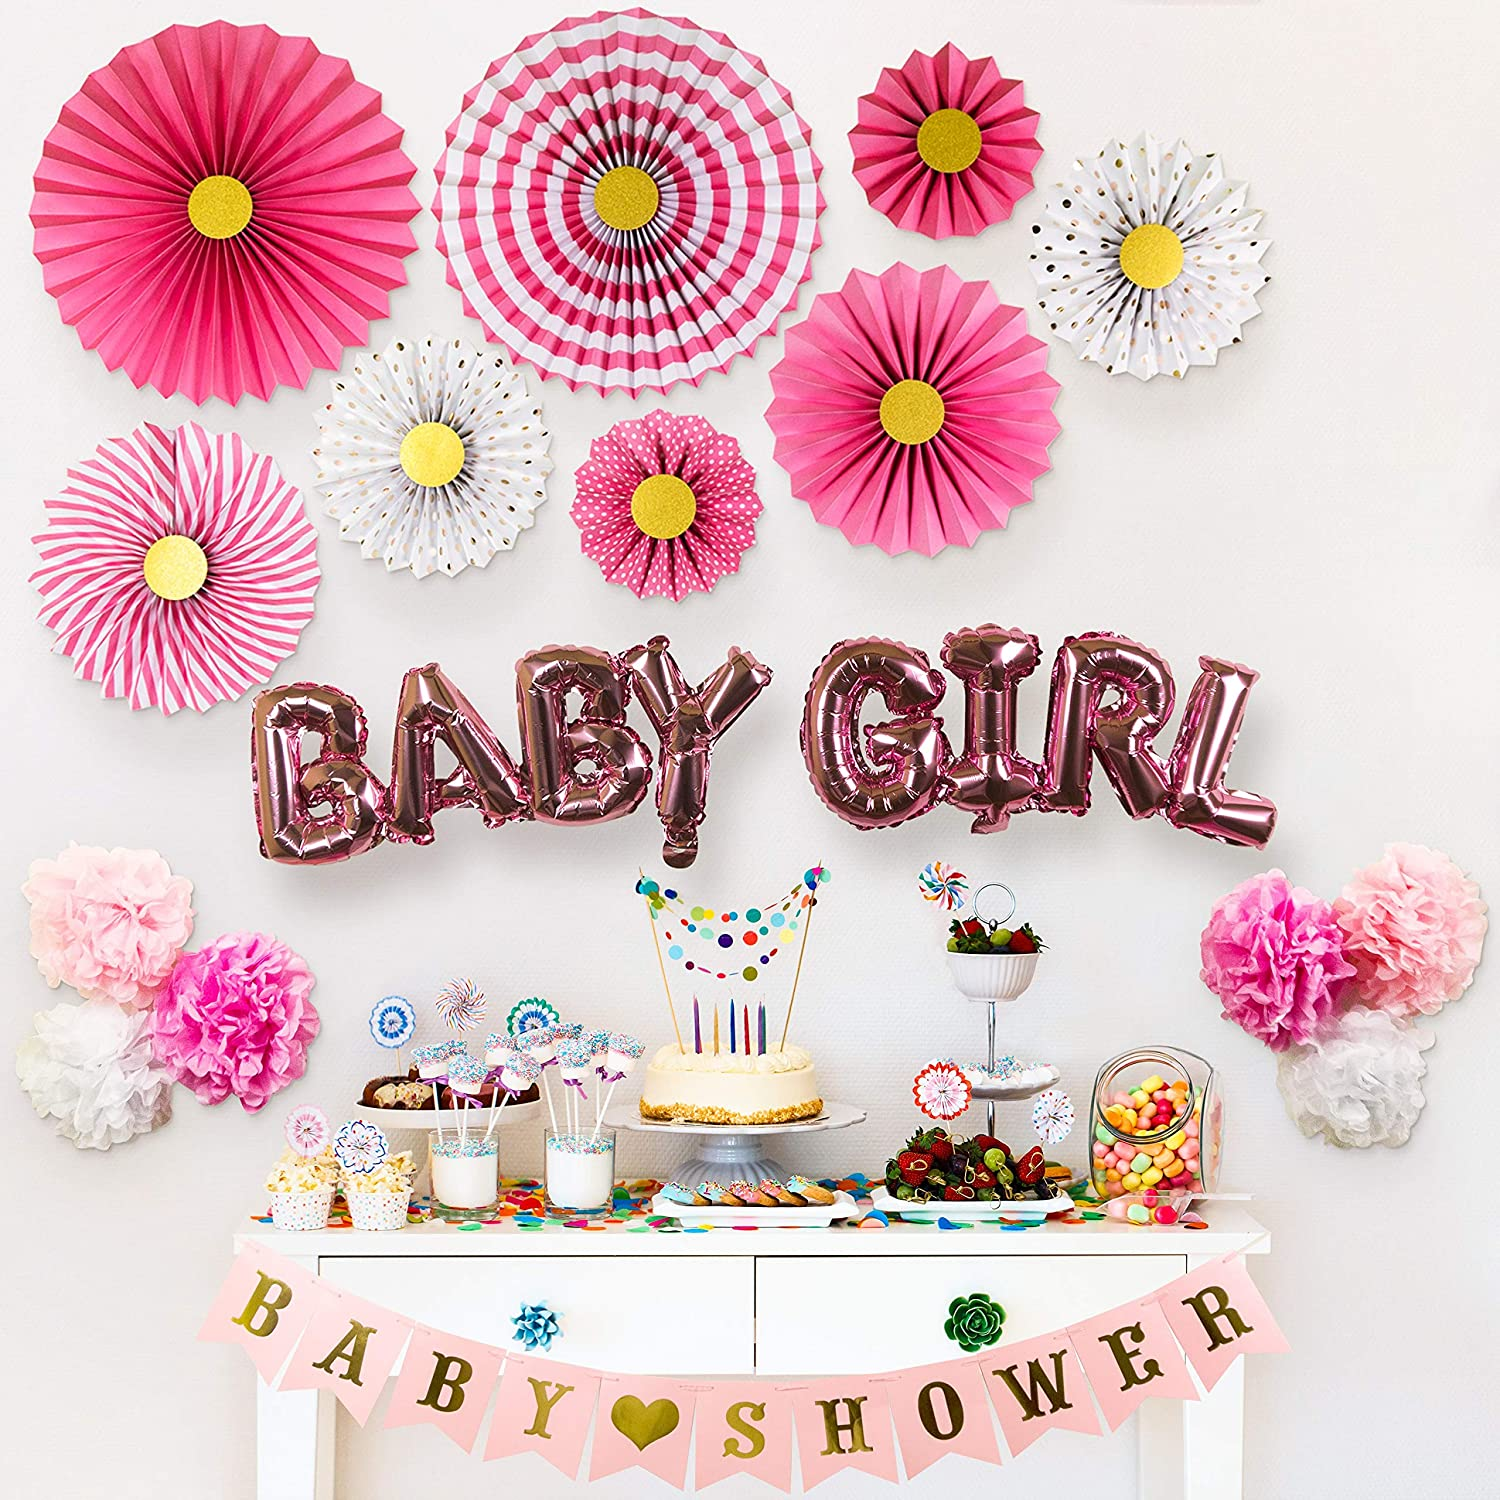 Partady Baby Shower Decorations for Girl – Pink and Gold Hanging Decorations Set with Paper Fans Kit, Banner, Tissue Pompoms Flowers and Balloons – Great Gift